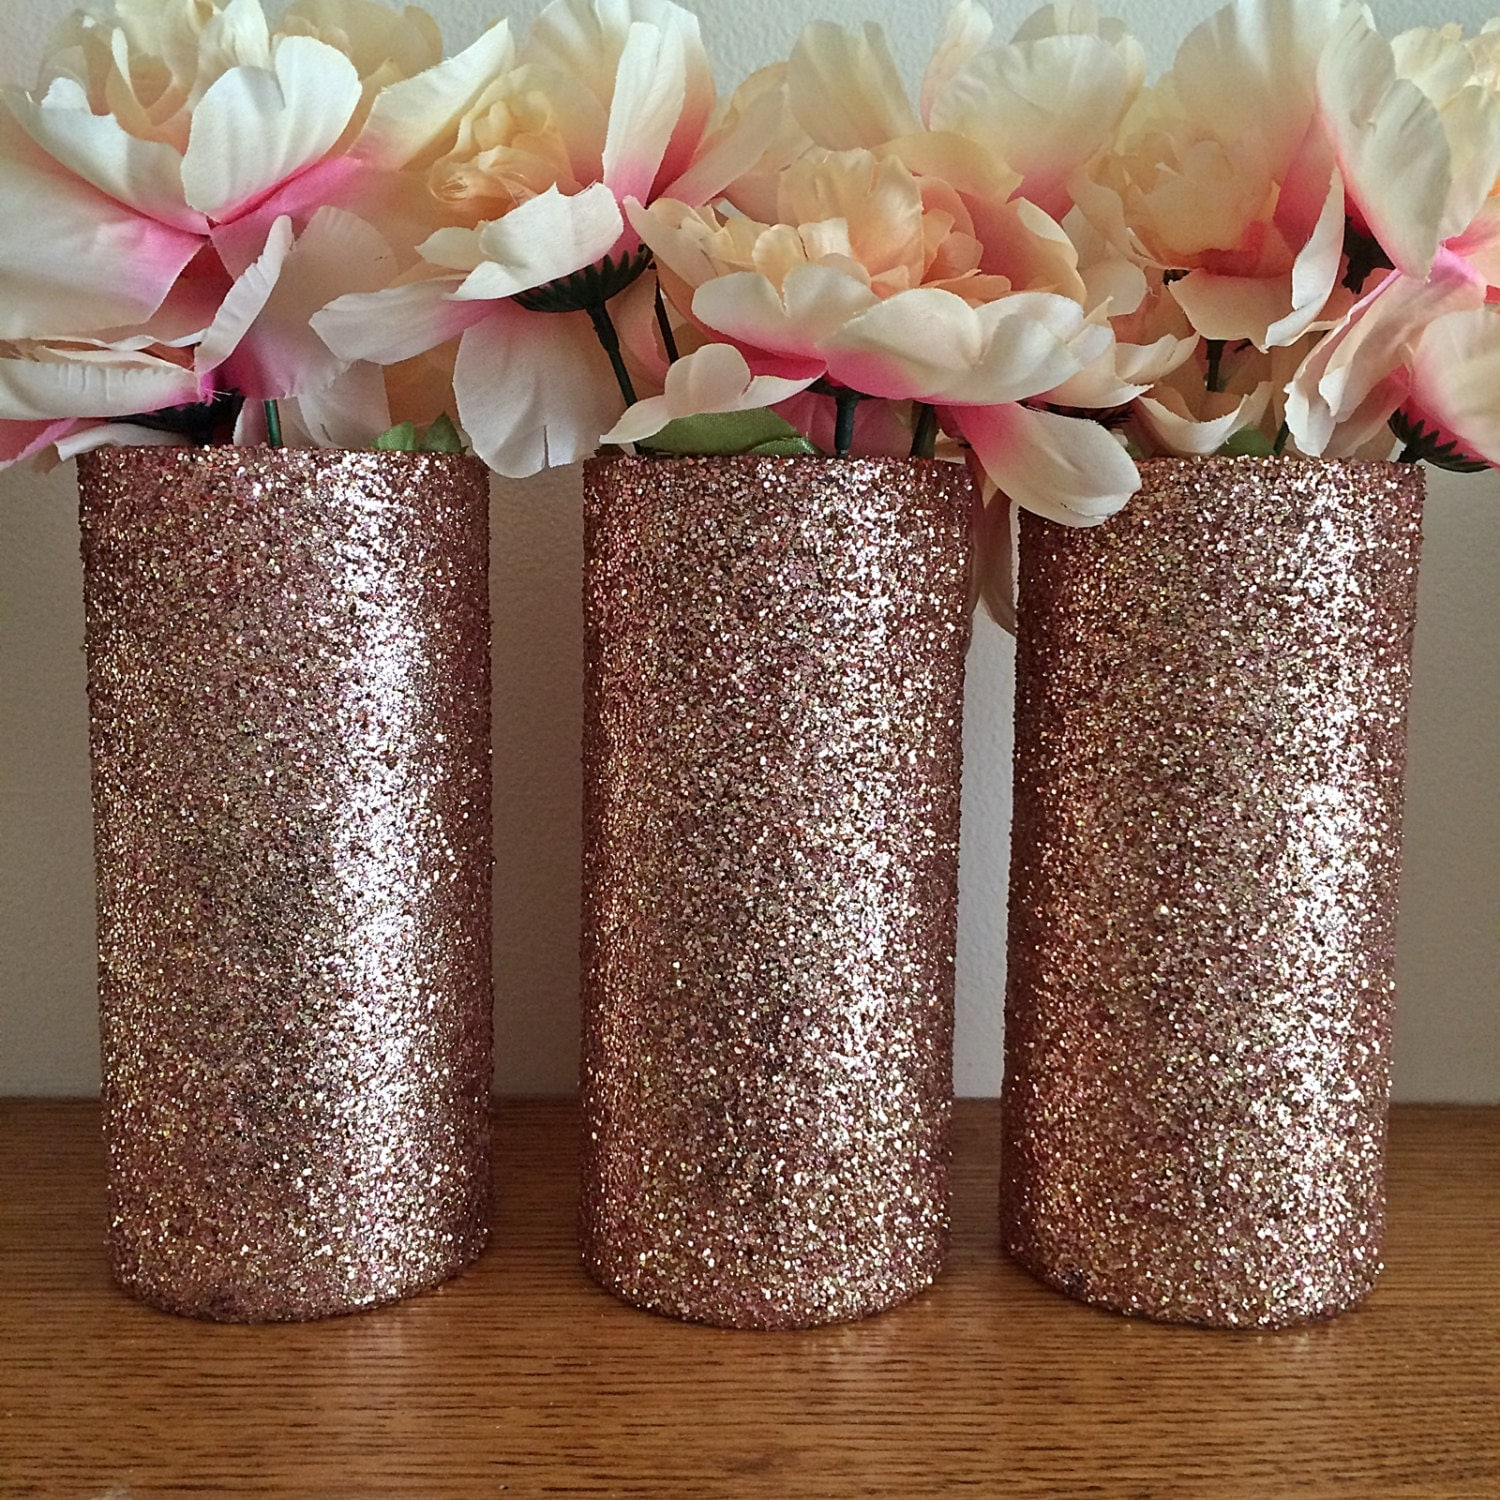 Rose Gold Mirror Centerpiece : Rose gold glitter vases centerpiece wedding